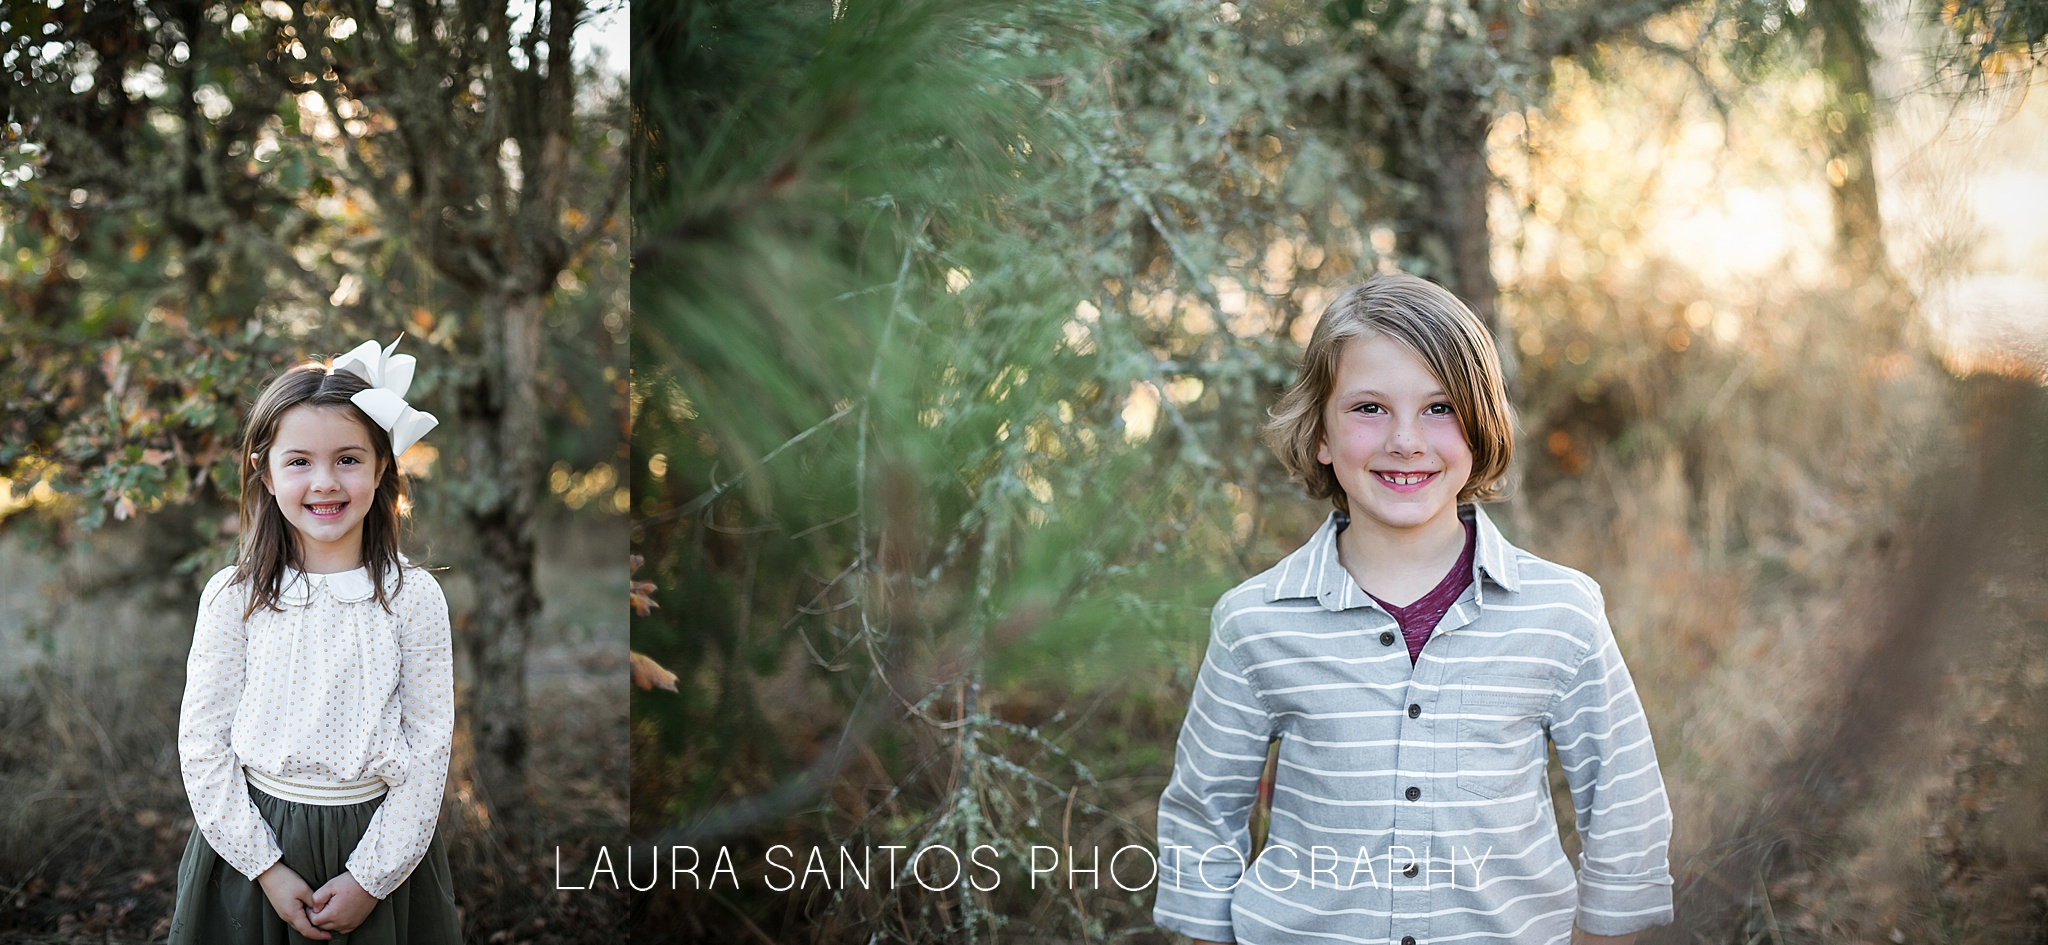 Laura Santos Photography Portland Oregon Family Photographer_0898.jpg